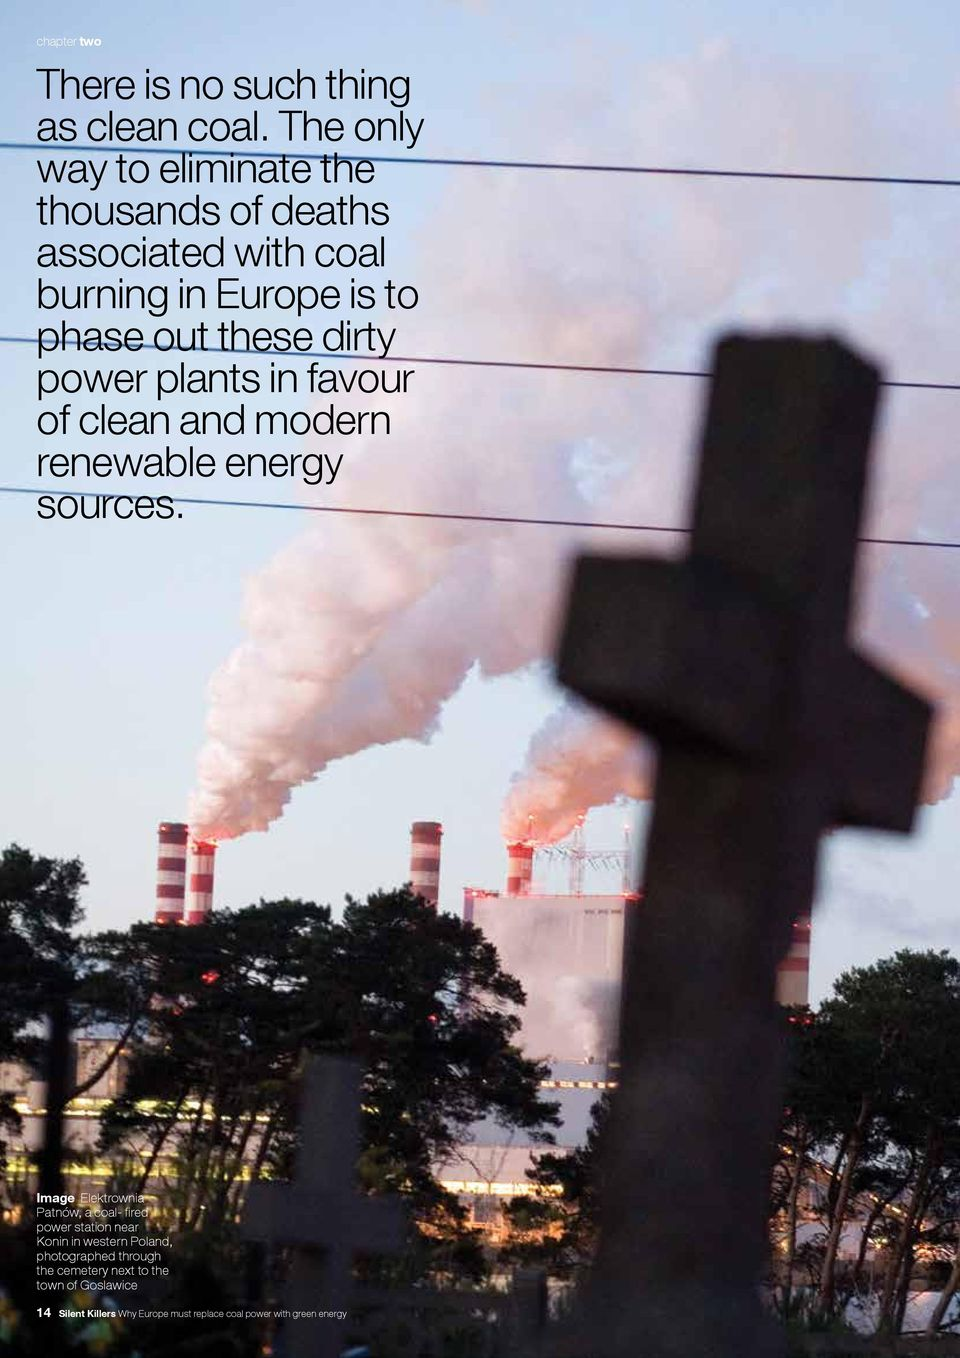 dirty power plants in favour of clean and modern renewable energy sources.